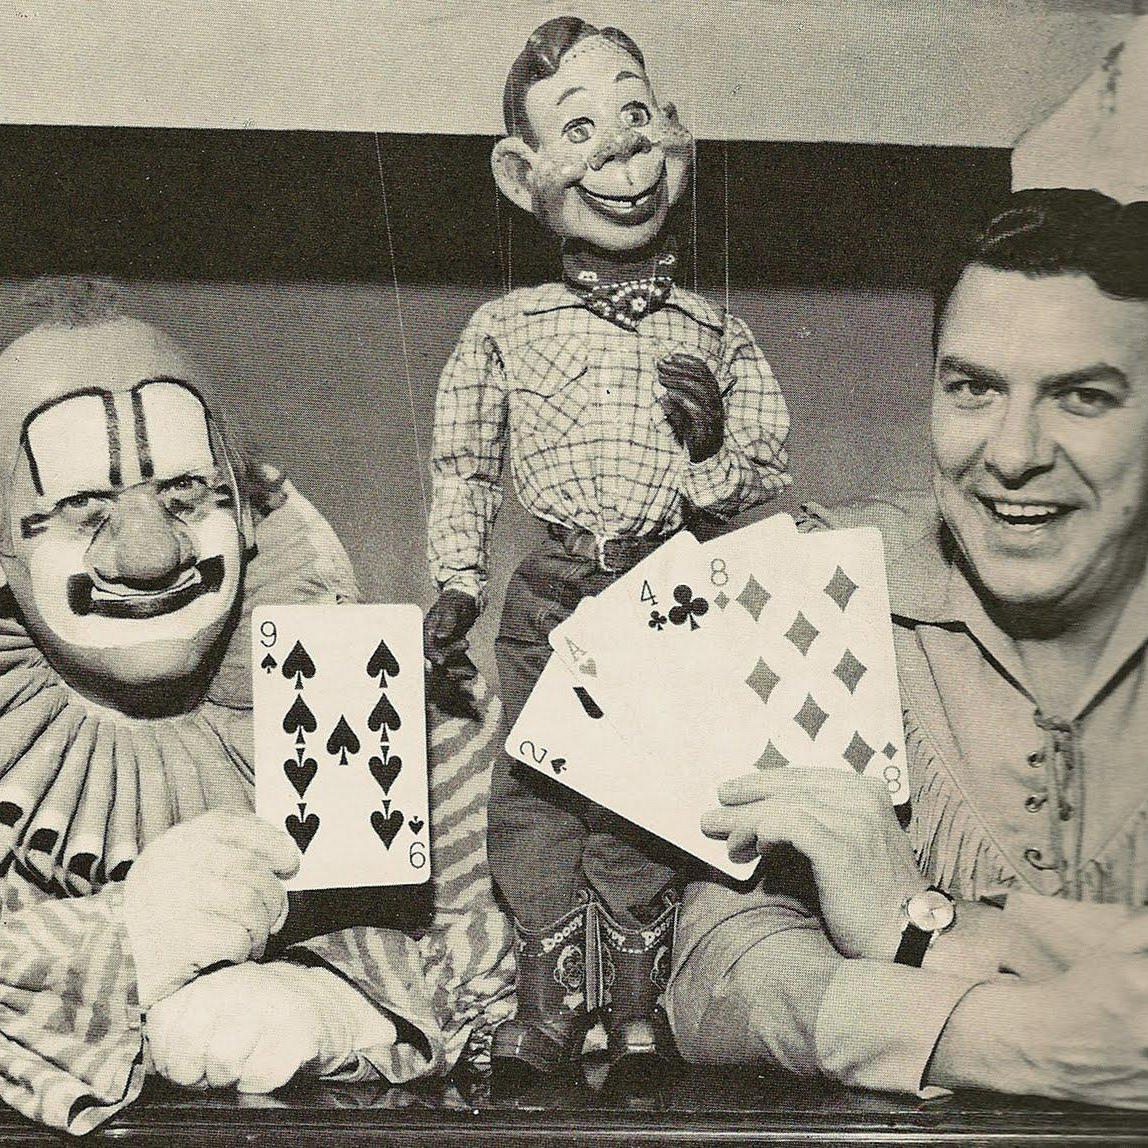 From James Joyce to Howdy Doody: Deconstruction and deindustrialization after 1968